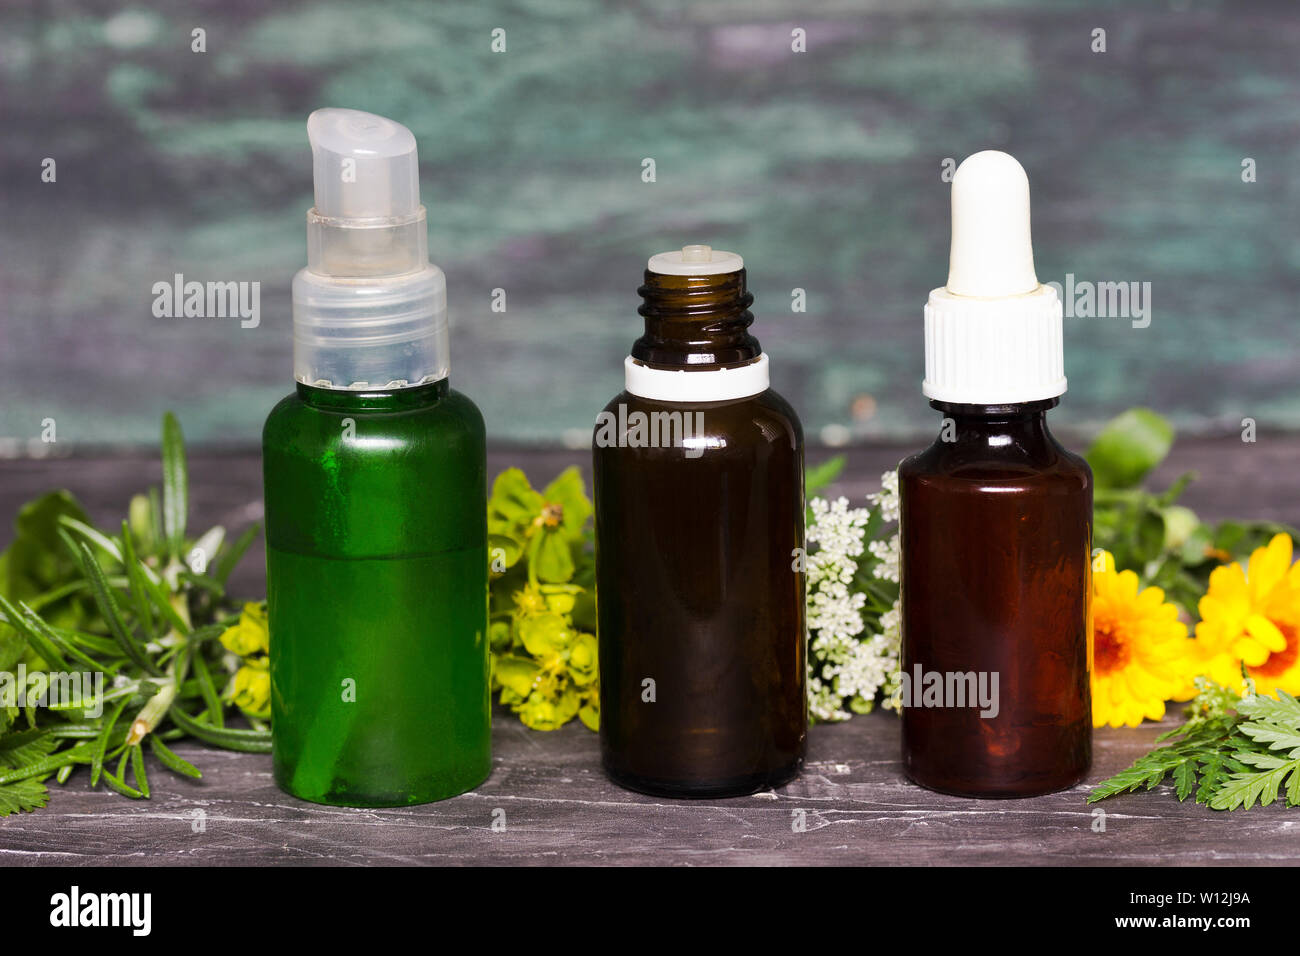 Alternative herbal medicine with medicinal plants essence bottles Stock Photo